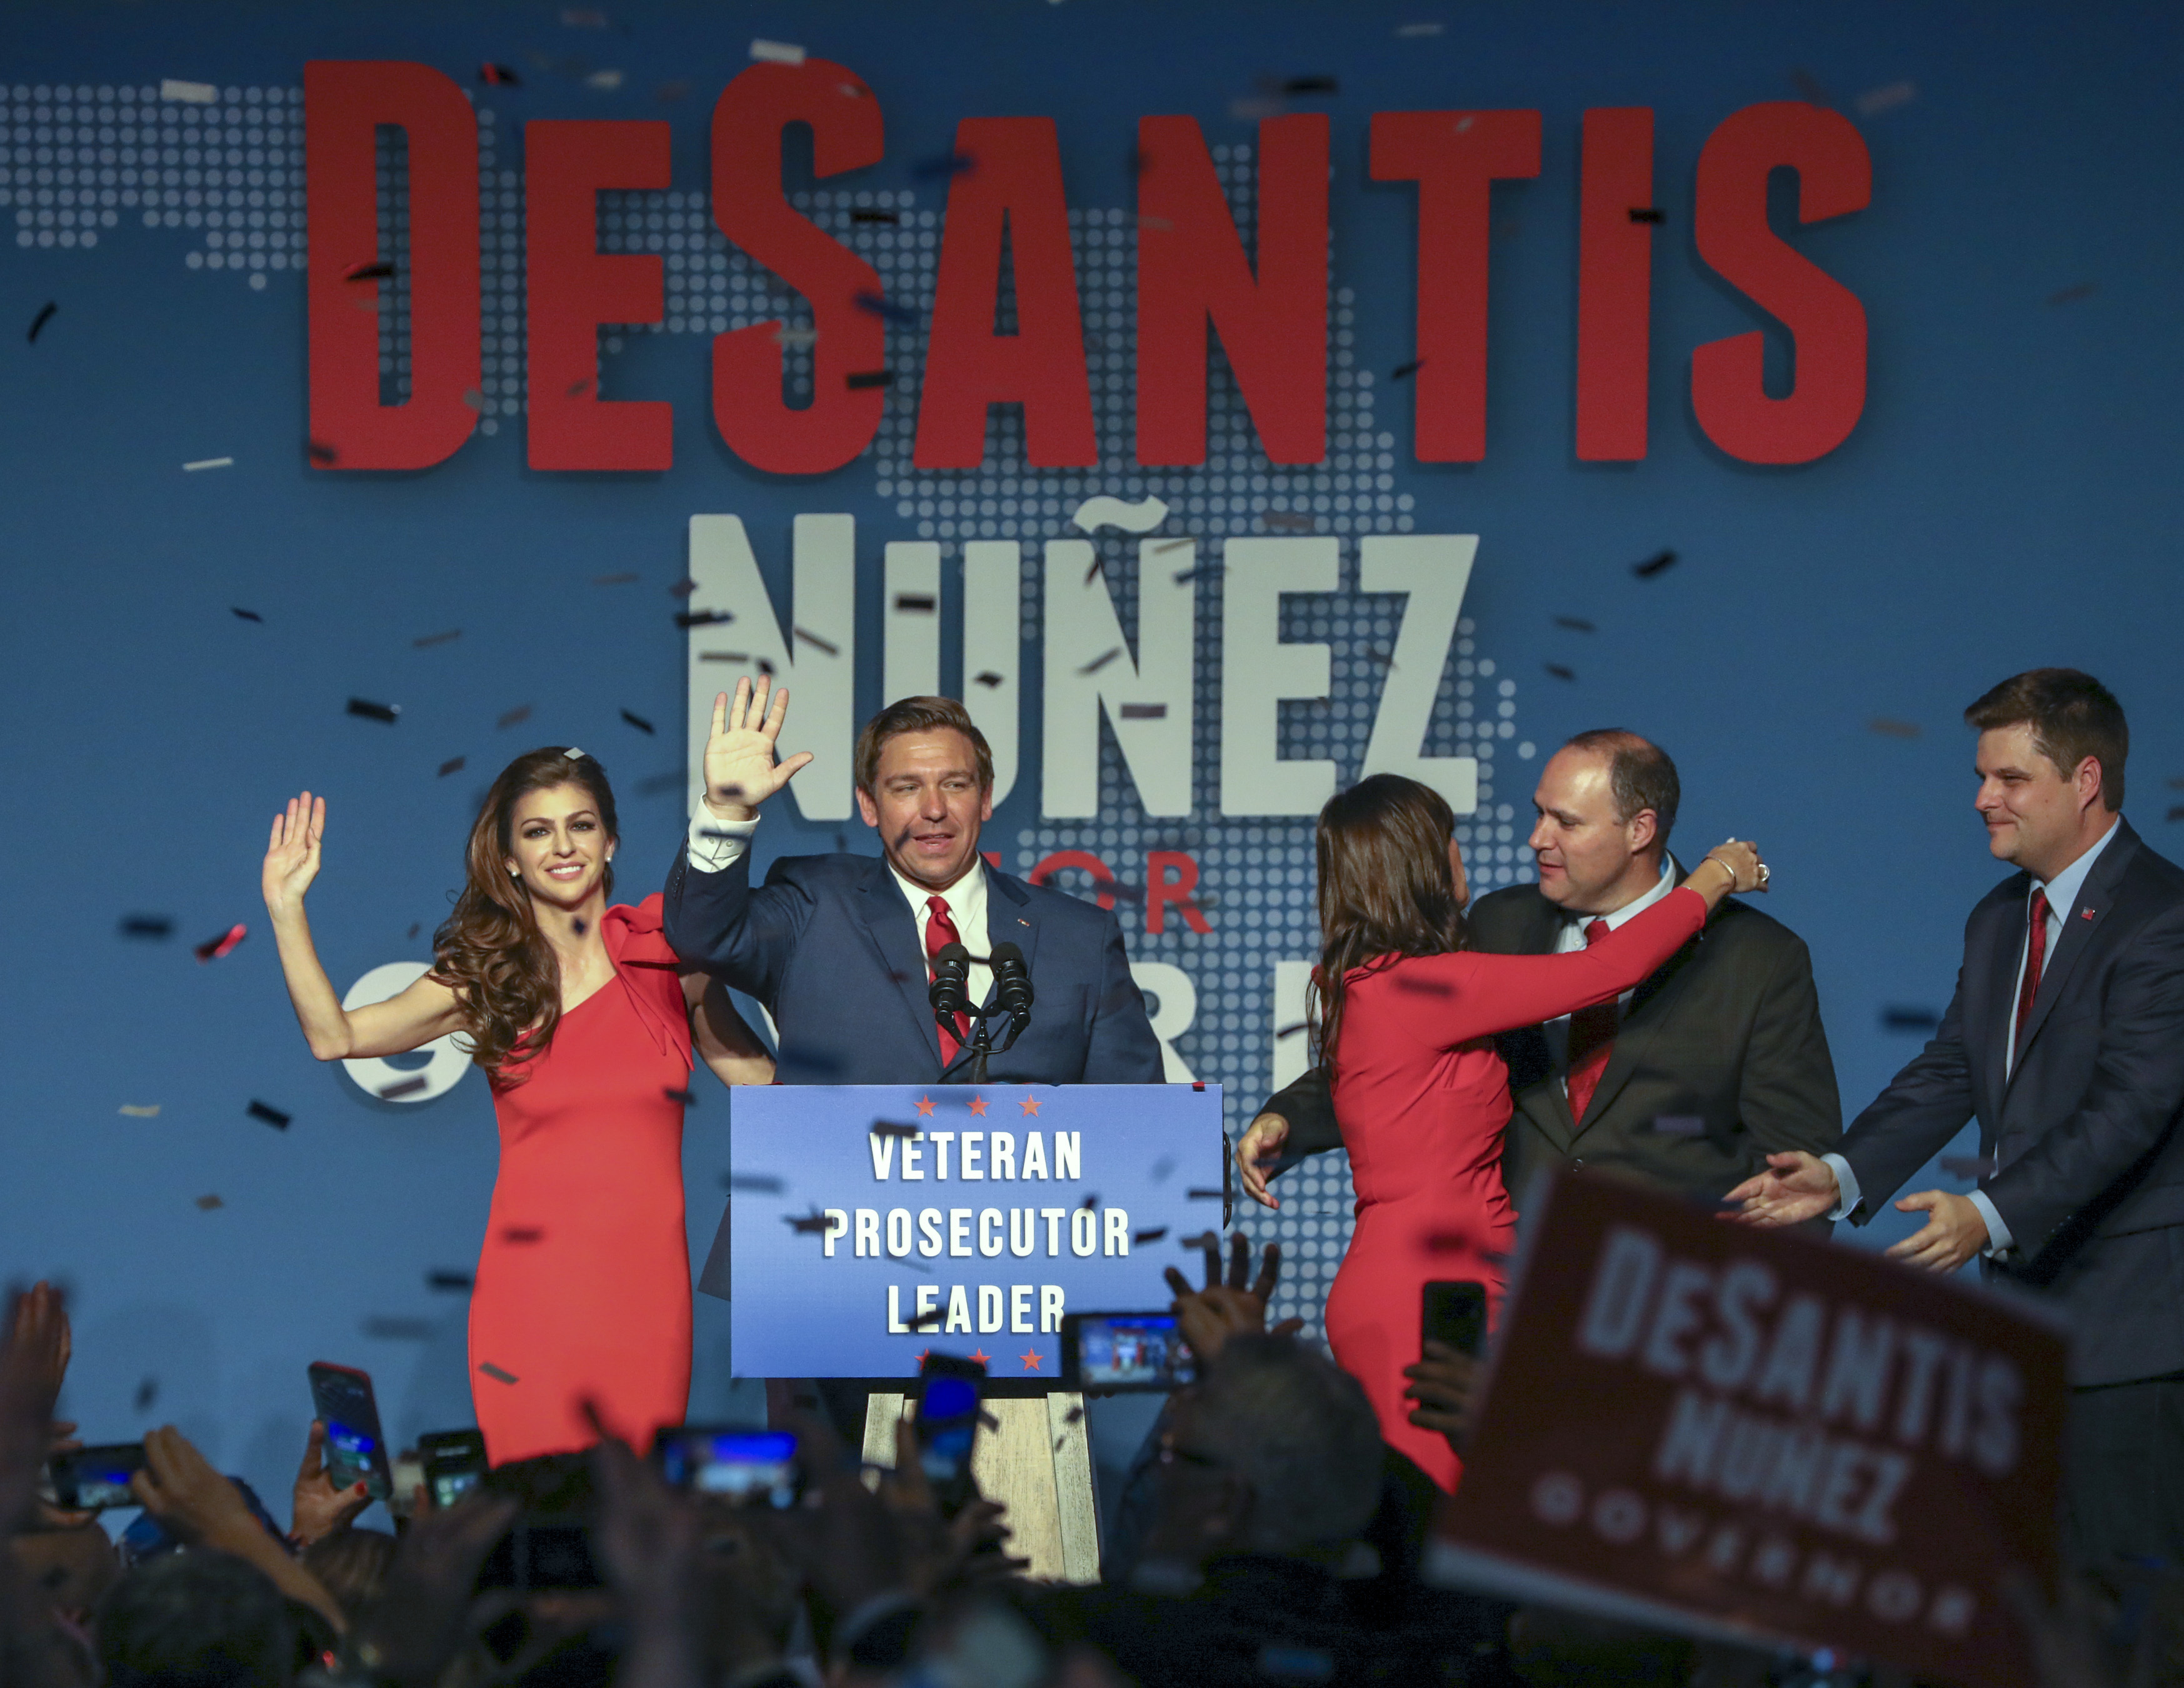 Republican Florida Governor-elect Ron DeSantis, center, waves to the supporters with his wife, Casey, left, and Republican Lt. Governor-elect Jeanette Nunez. (Chris Urso/Tampa Bay Times via AP)